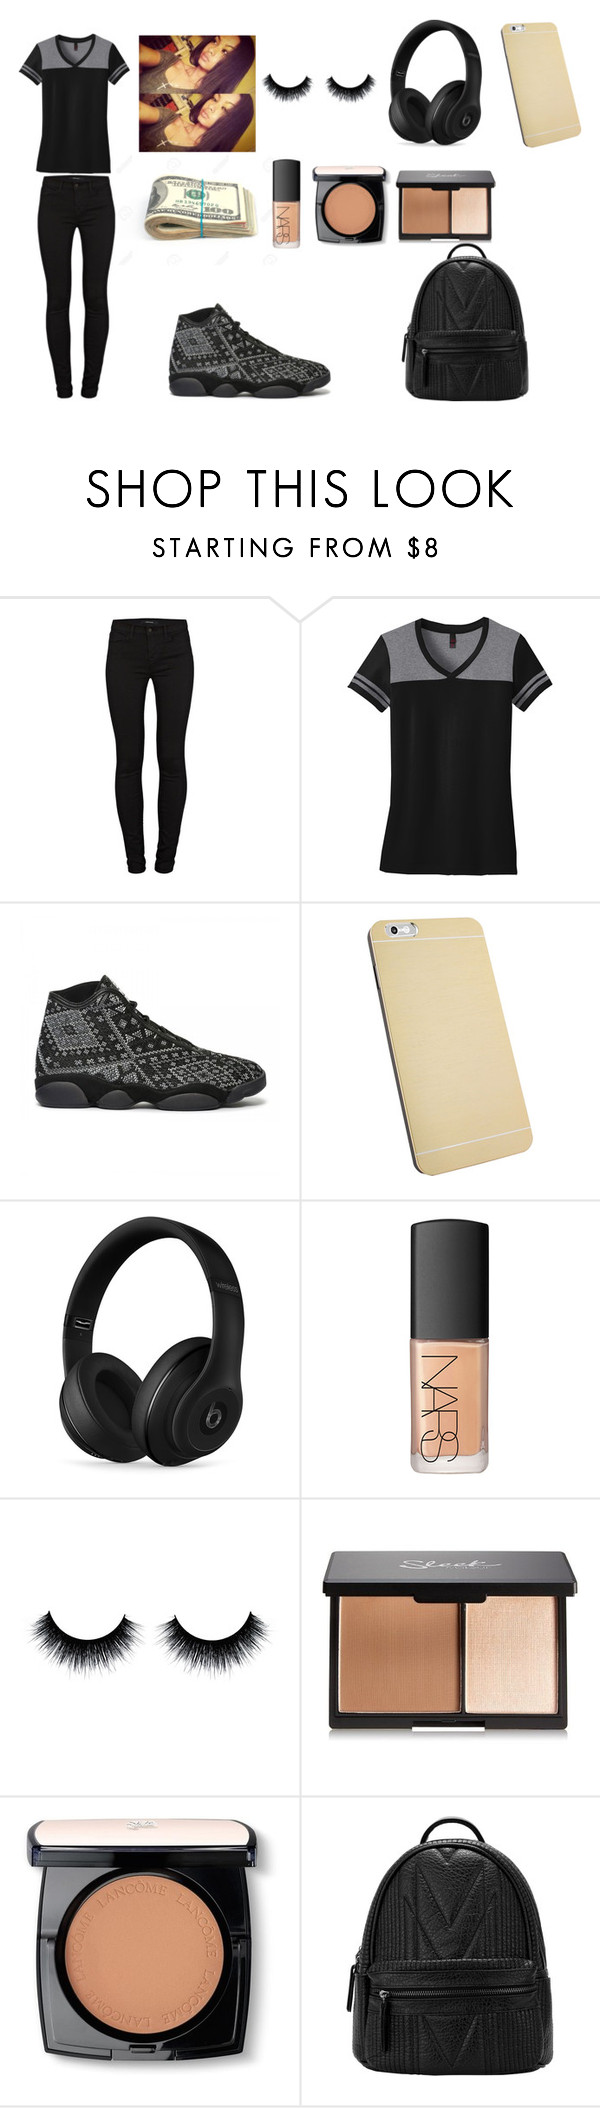 """""""Fashion & Beauty"""" by naturallycurls ❤ liked on Polyvore featuring J Brand, Beats by Dr. Dre, NARS Cosmetics, Lancôme, women's clothing, women's fashion, women, female, woman and misses"""